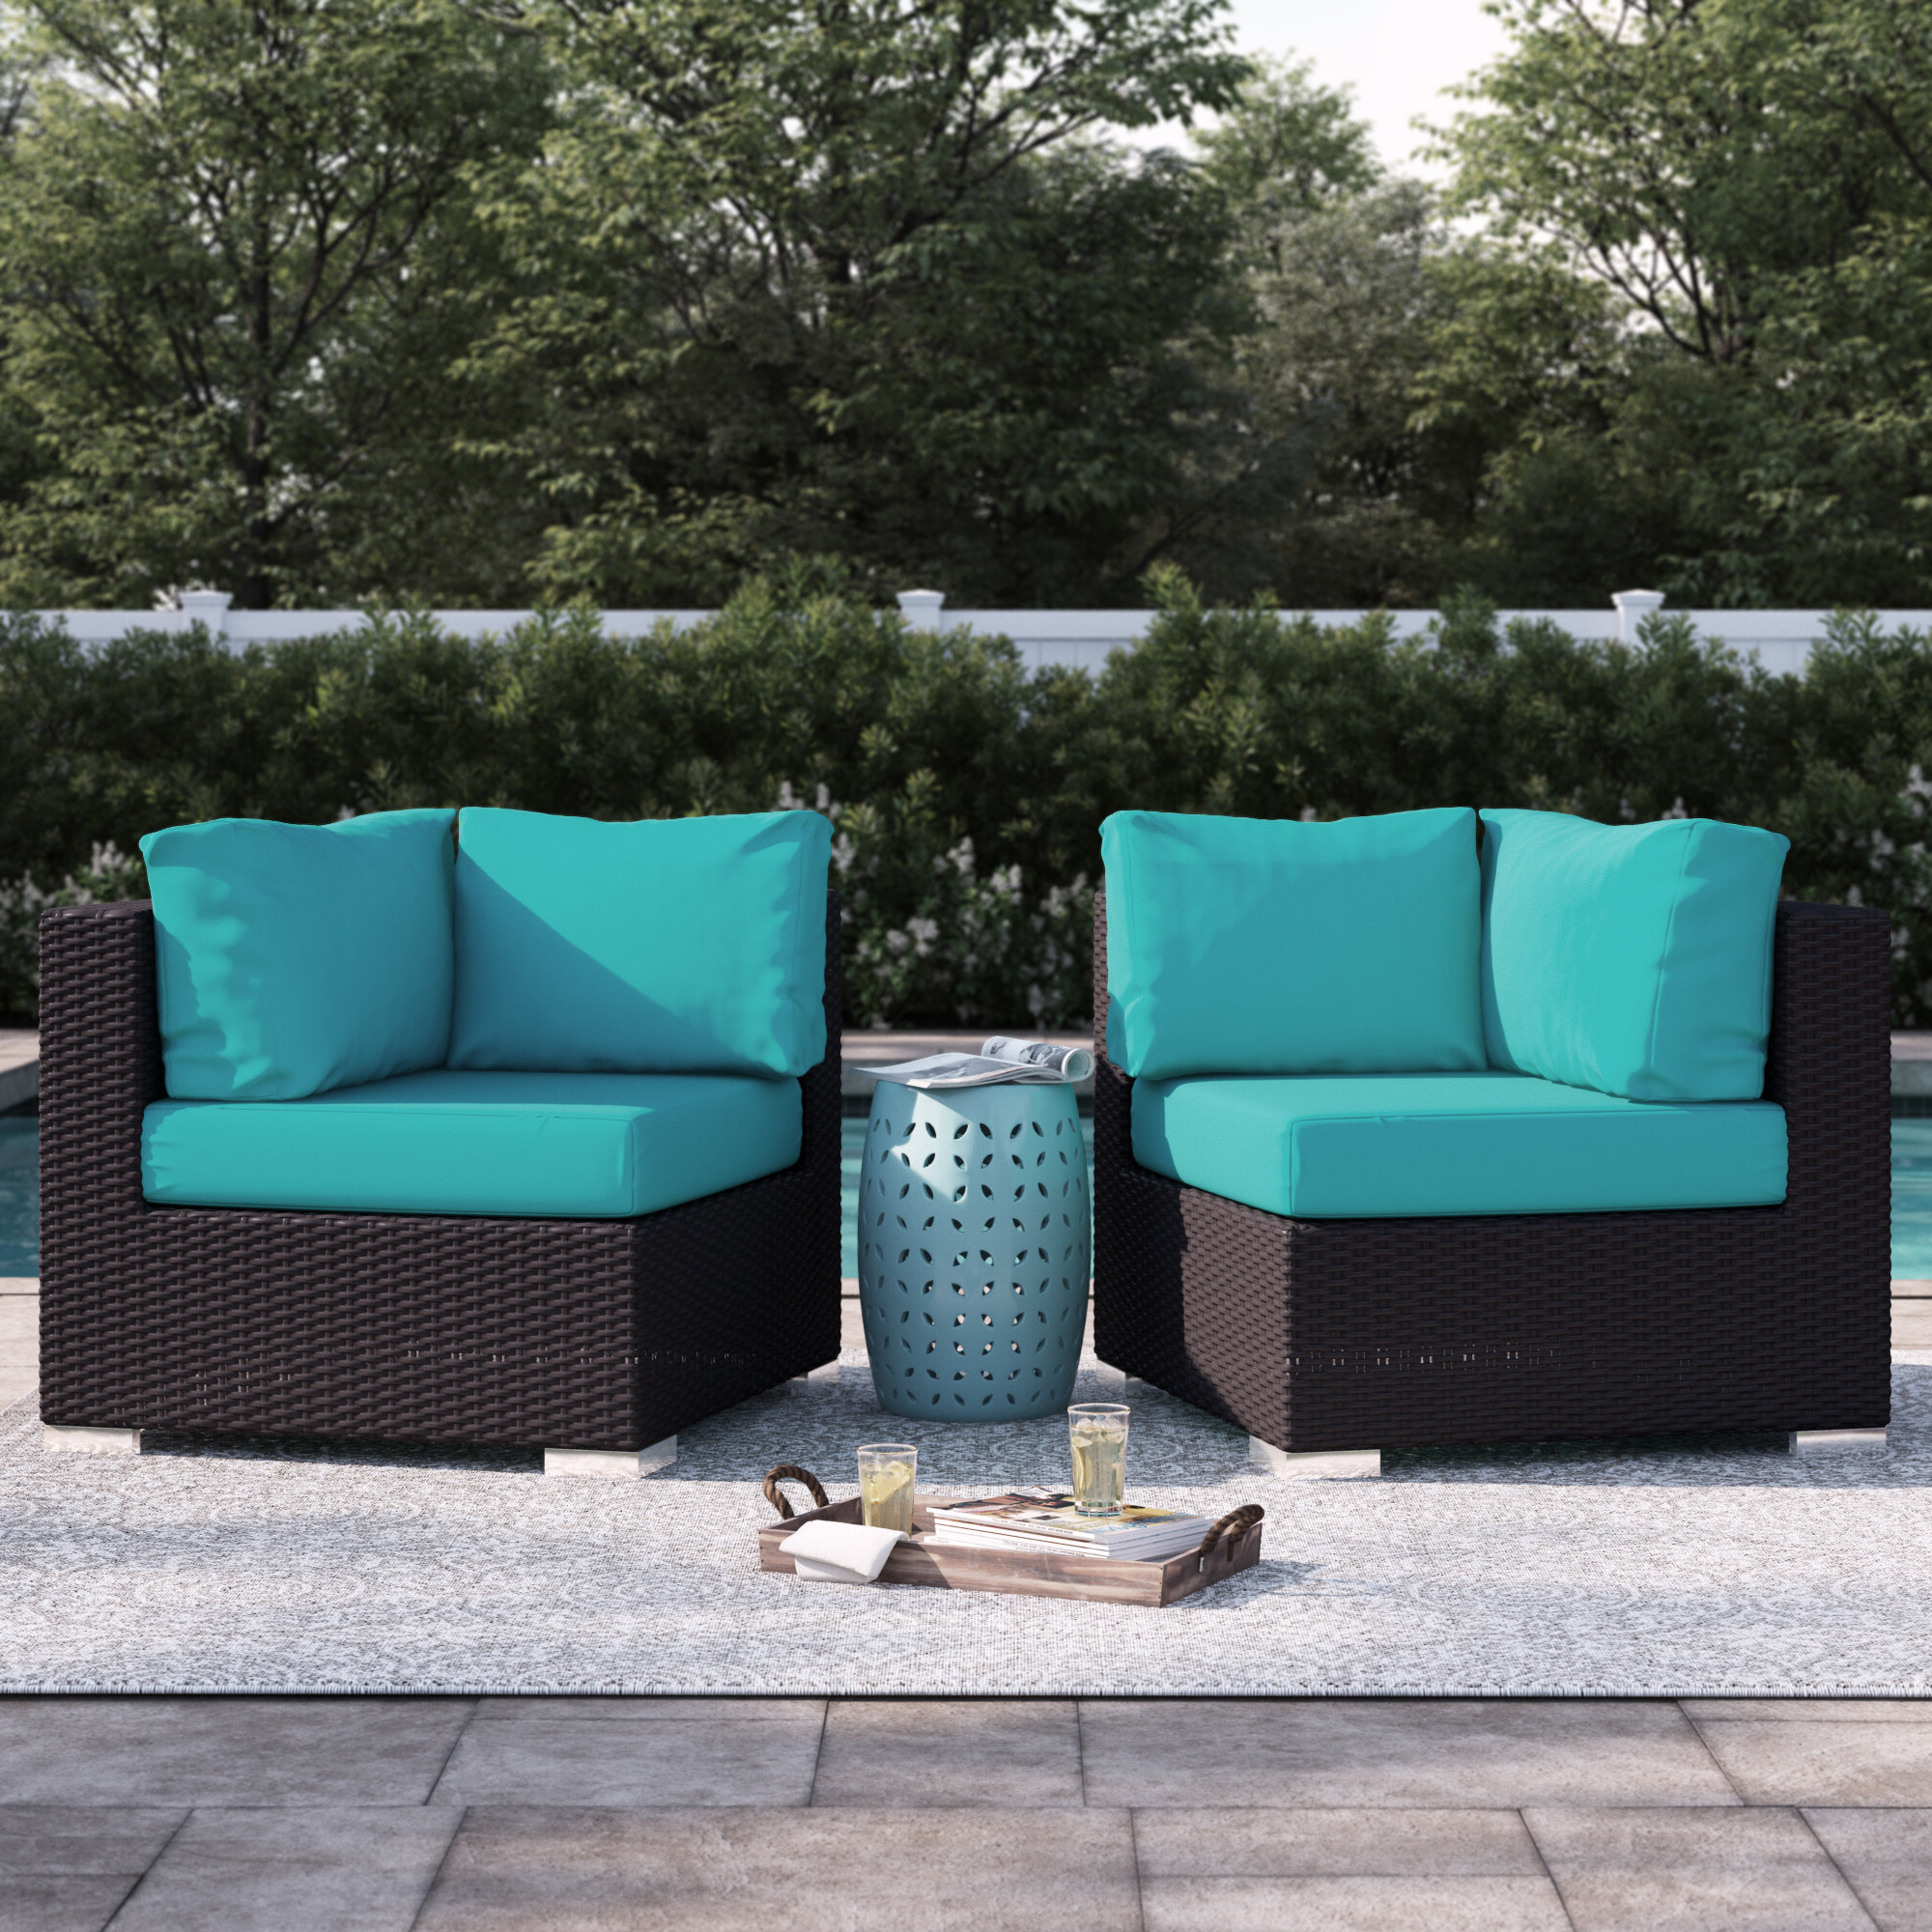 Brentwood Corner Chair With Cushions Inside Widely Used Brentwood Patio Sofas With Cushions (View 4 of 18)